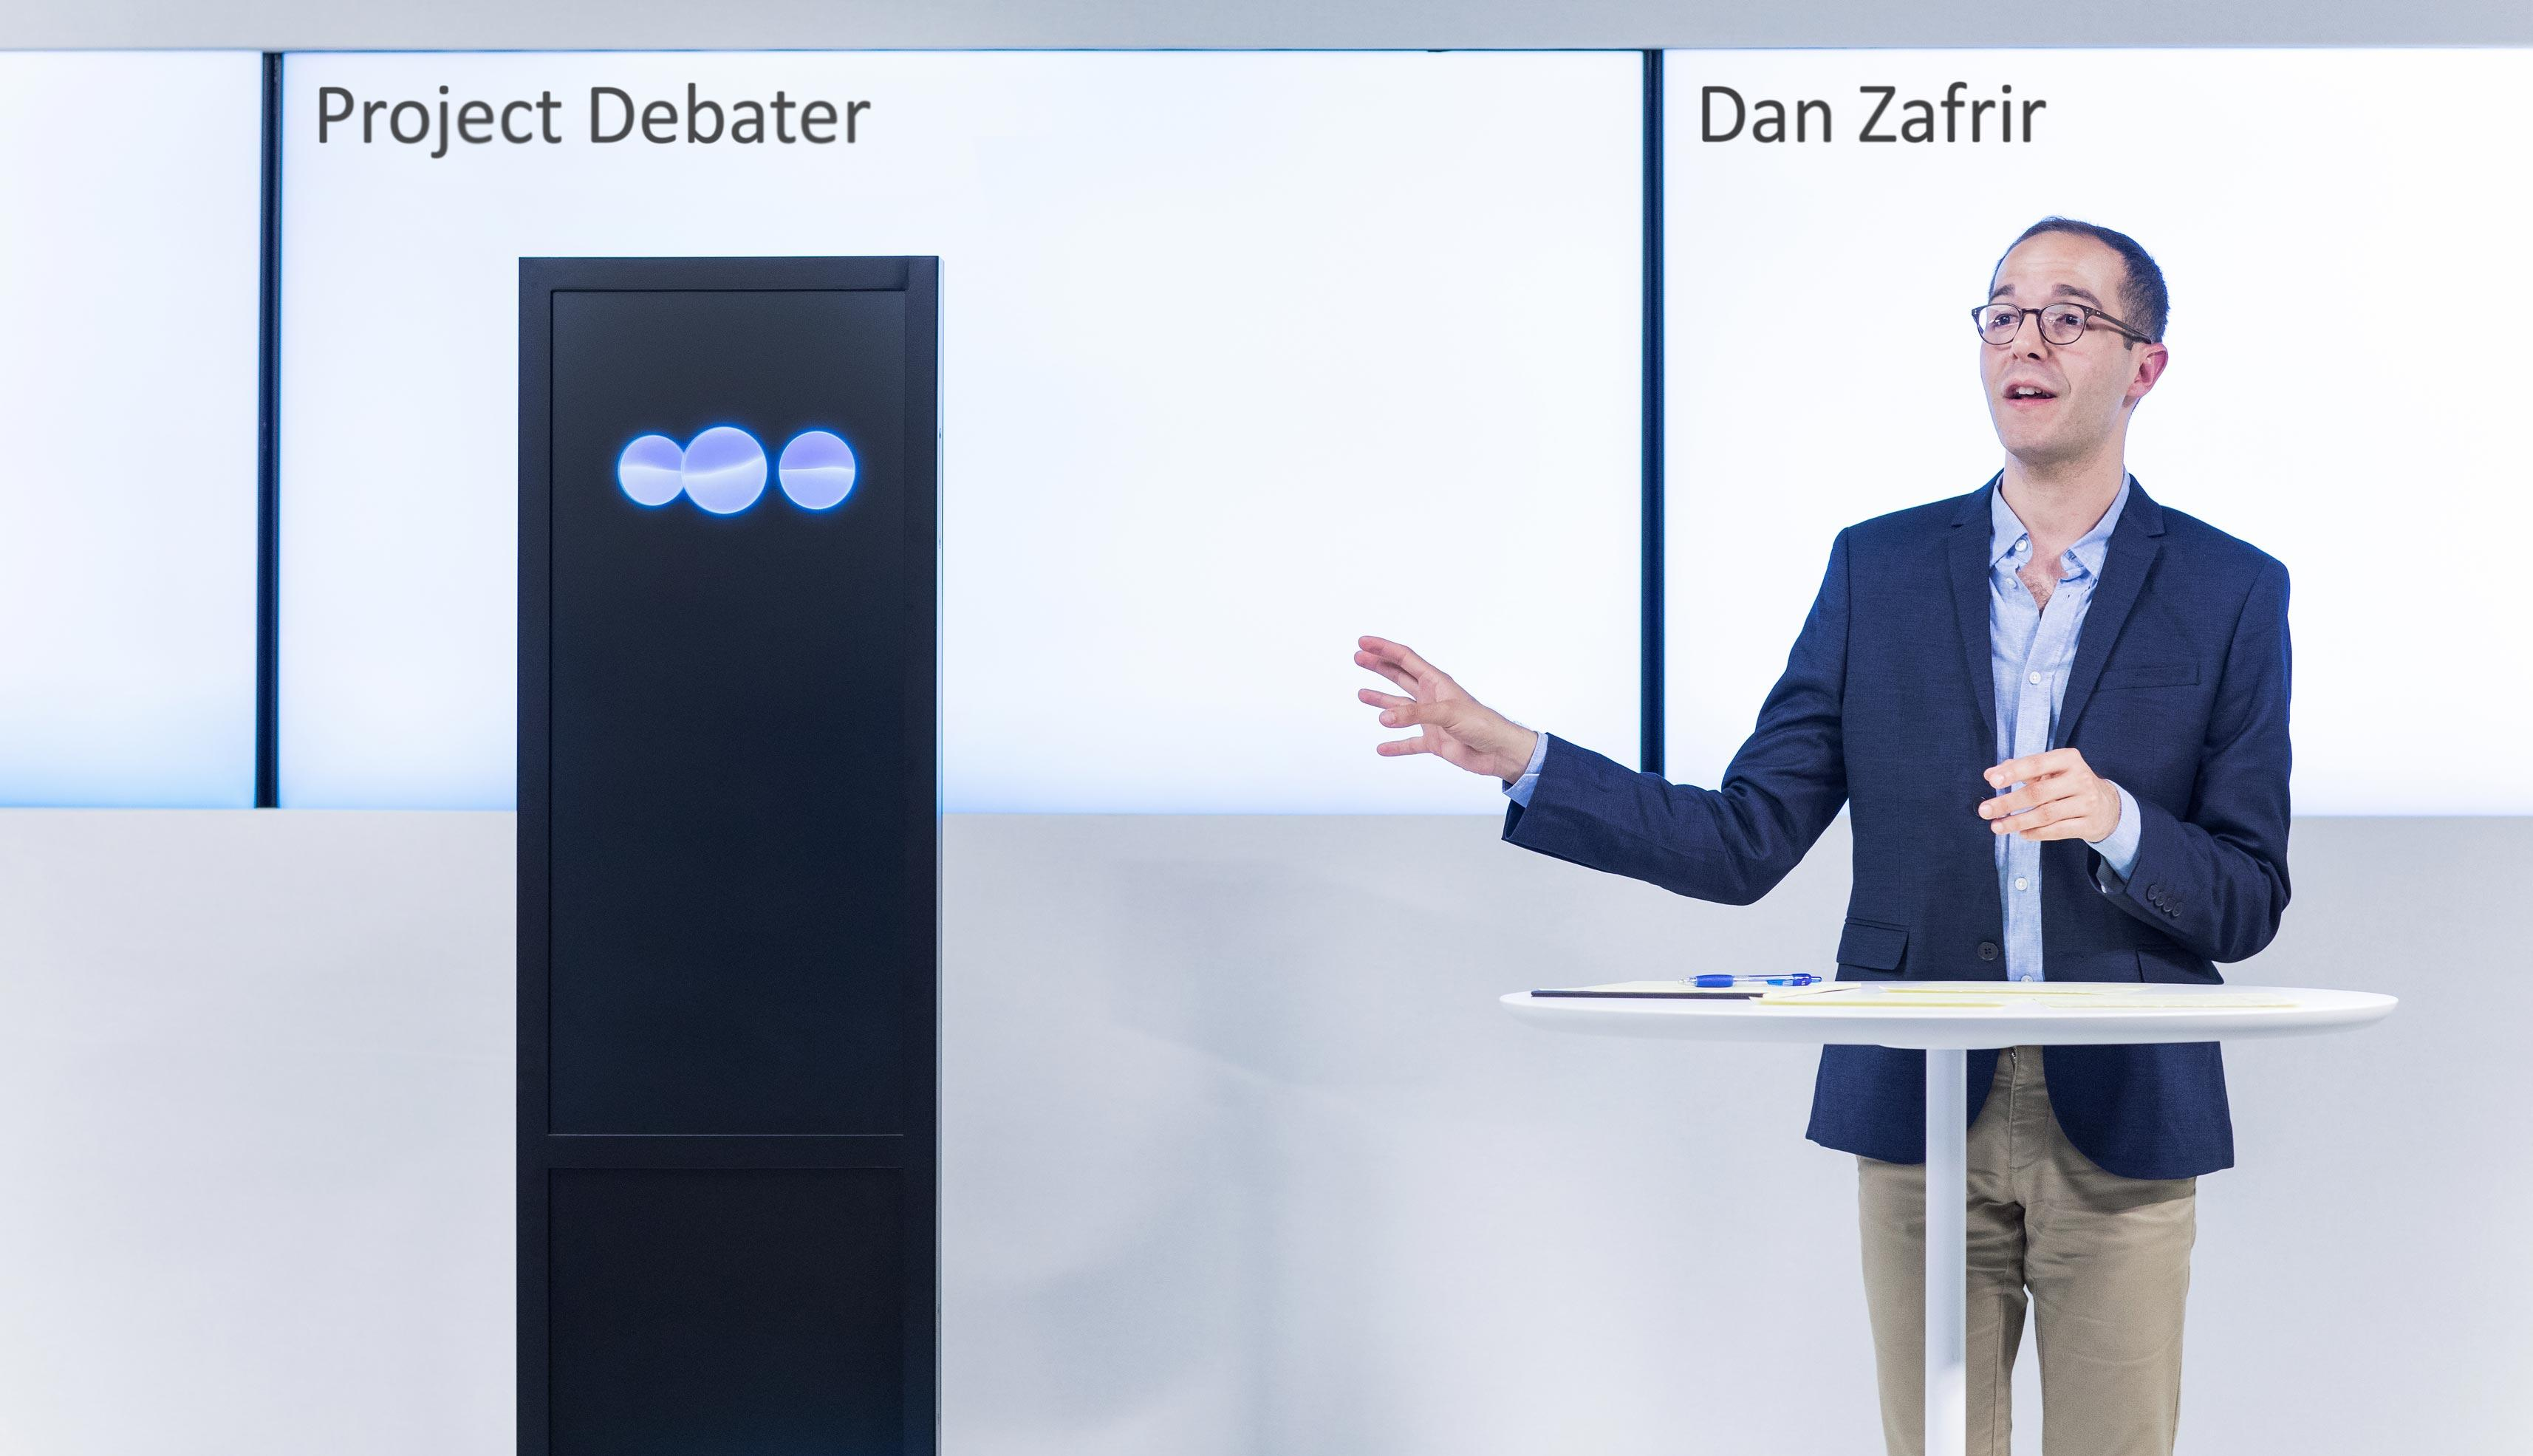 IBM Project Debater, represented by a black obelisk with animated blue circles, takes on human debater Dan Zafrir.